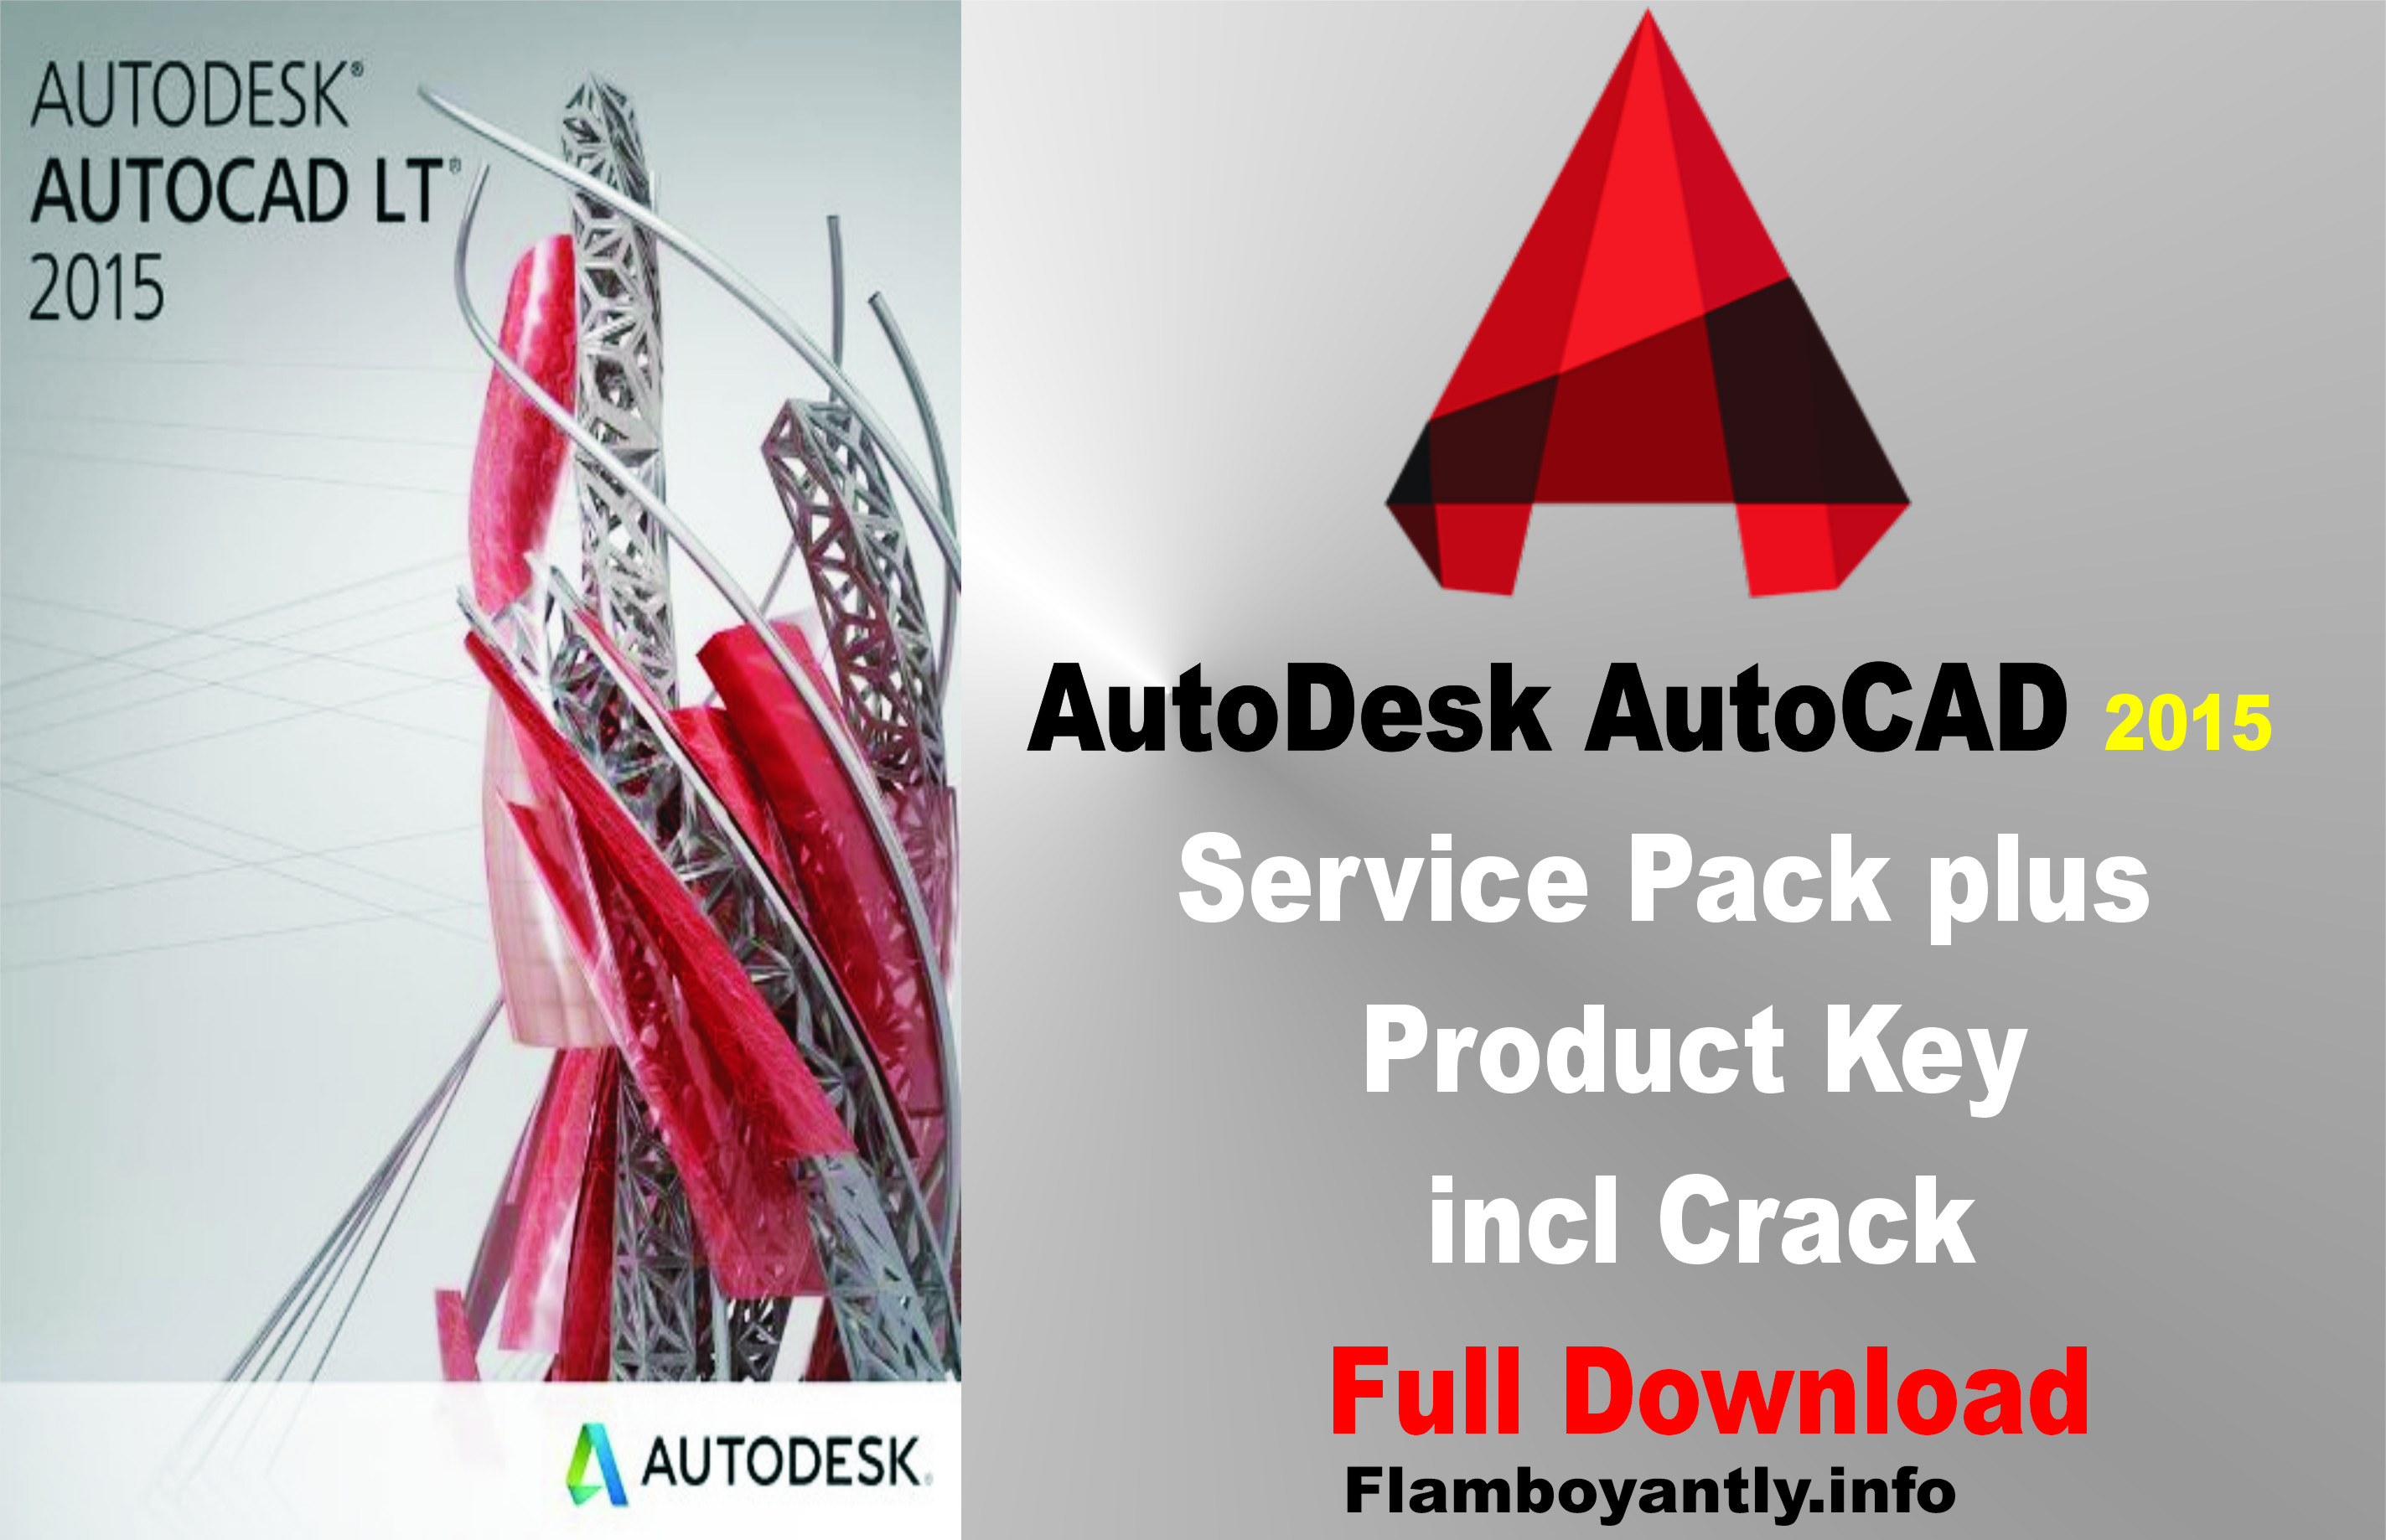 AutoDesk AutoCAD 2015 Service Pack plus Product Key incl Crack Full Download